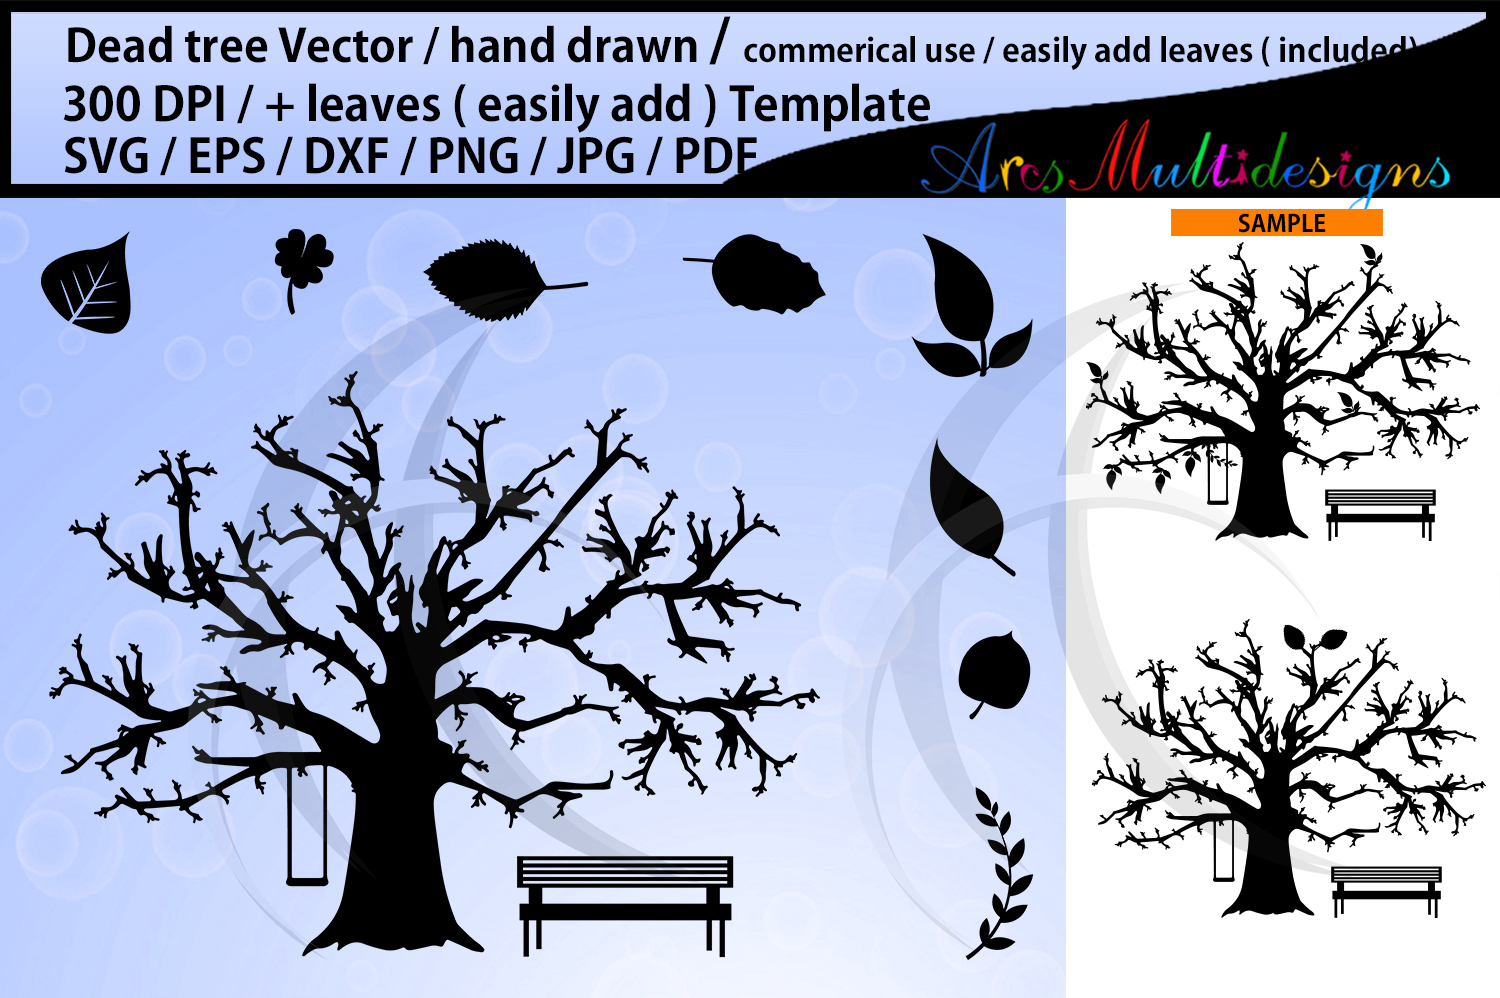 Download Free Dead Tree And Leaves Template Graphic By Arcs Multidesigns for Cricut Explore, Silhouette and other cutting machines.